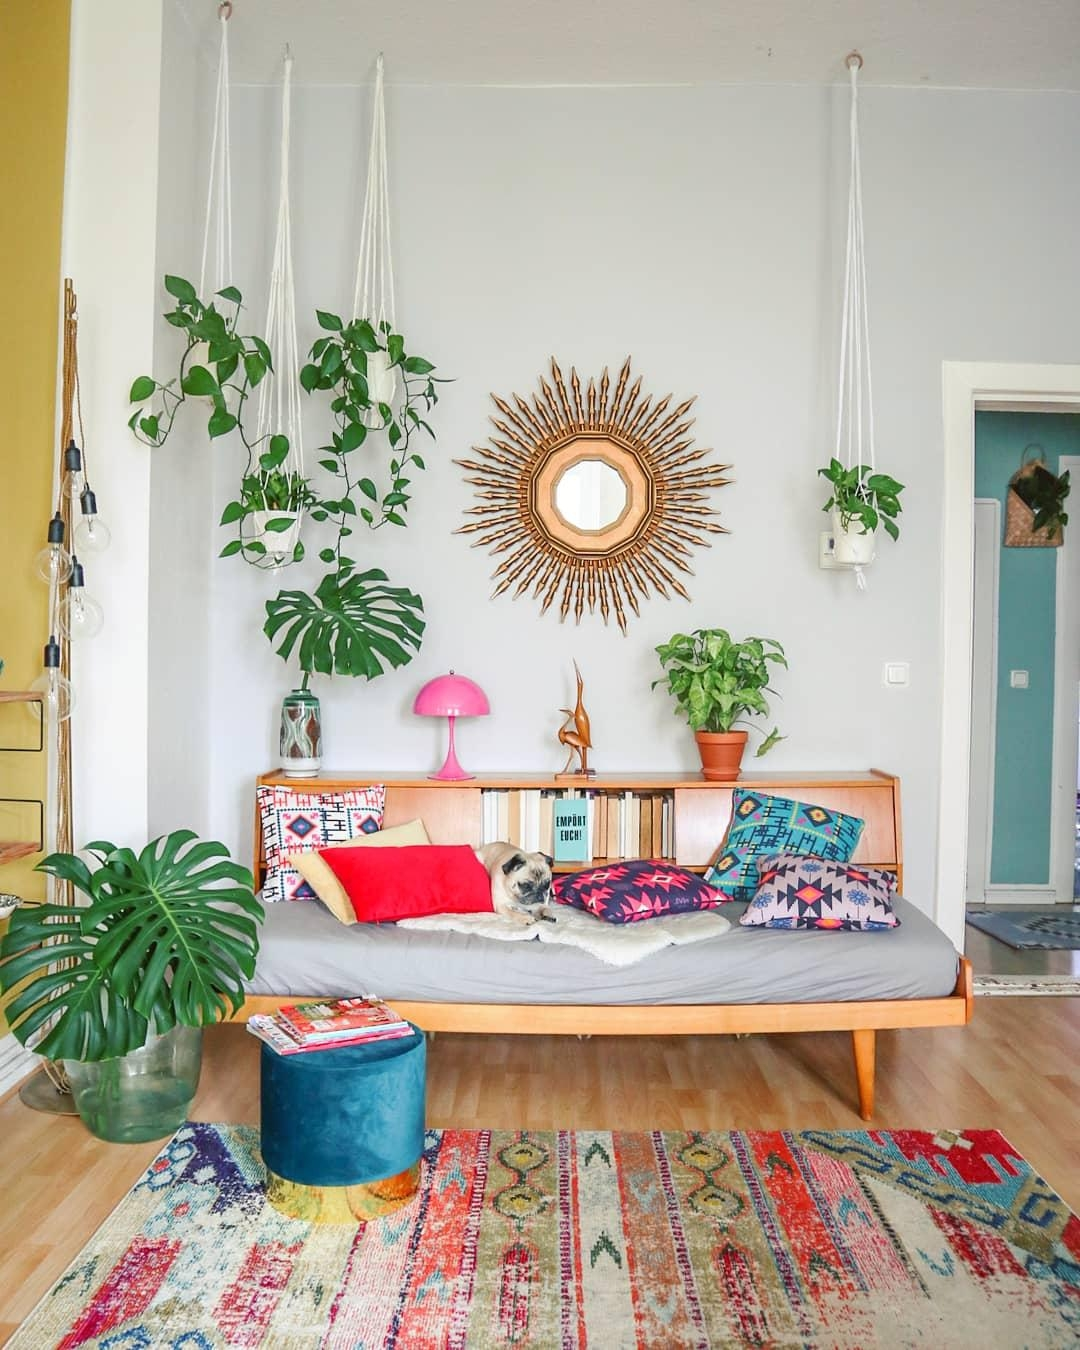 #daybed #colorful #plant #boho #vintage